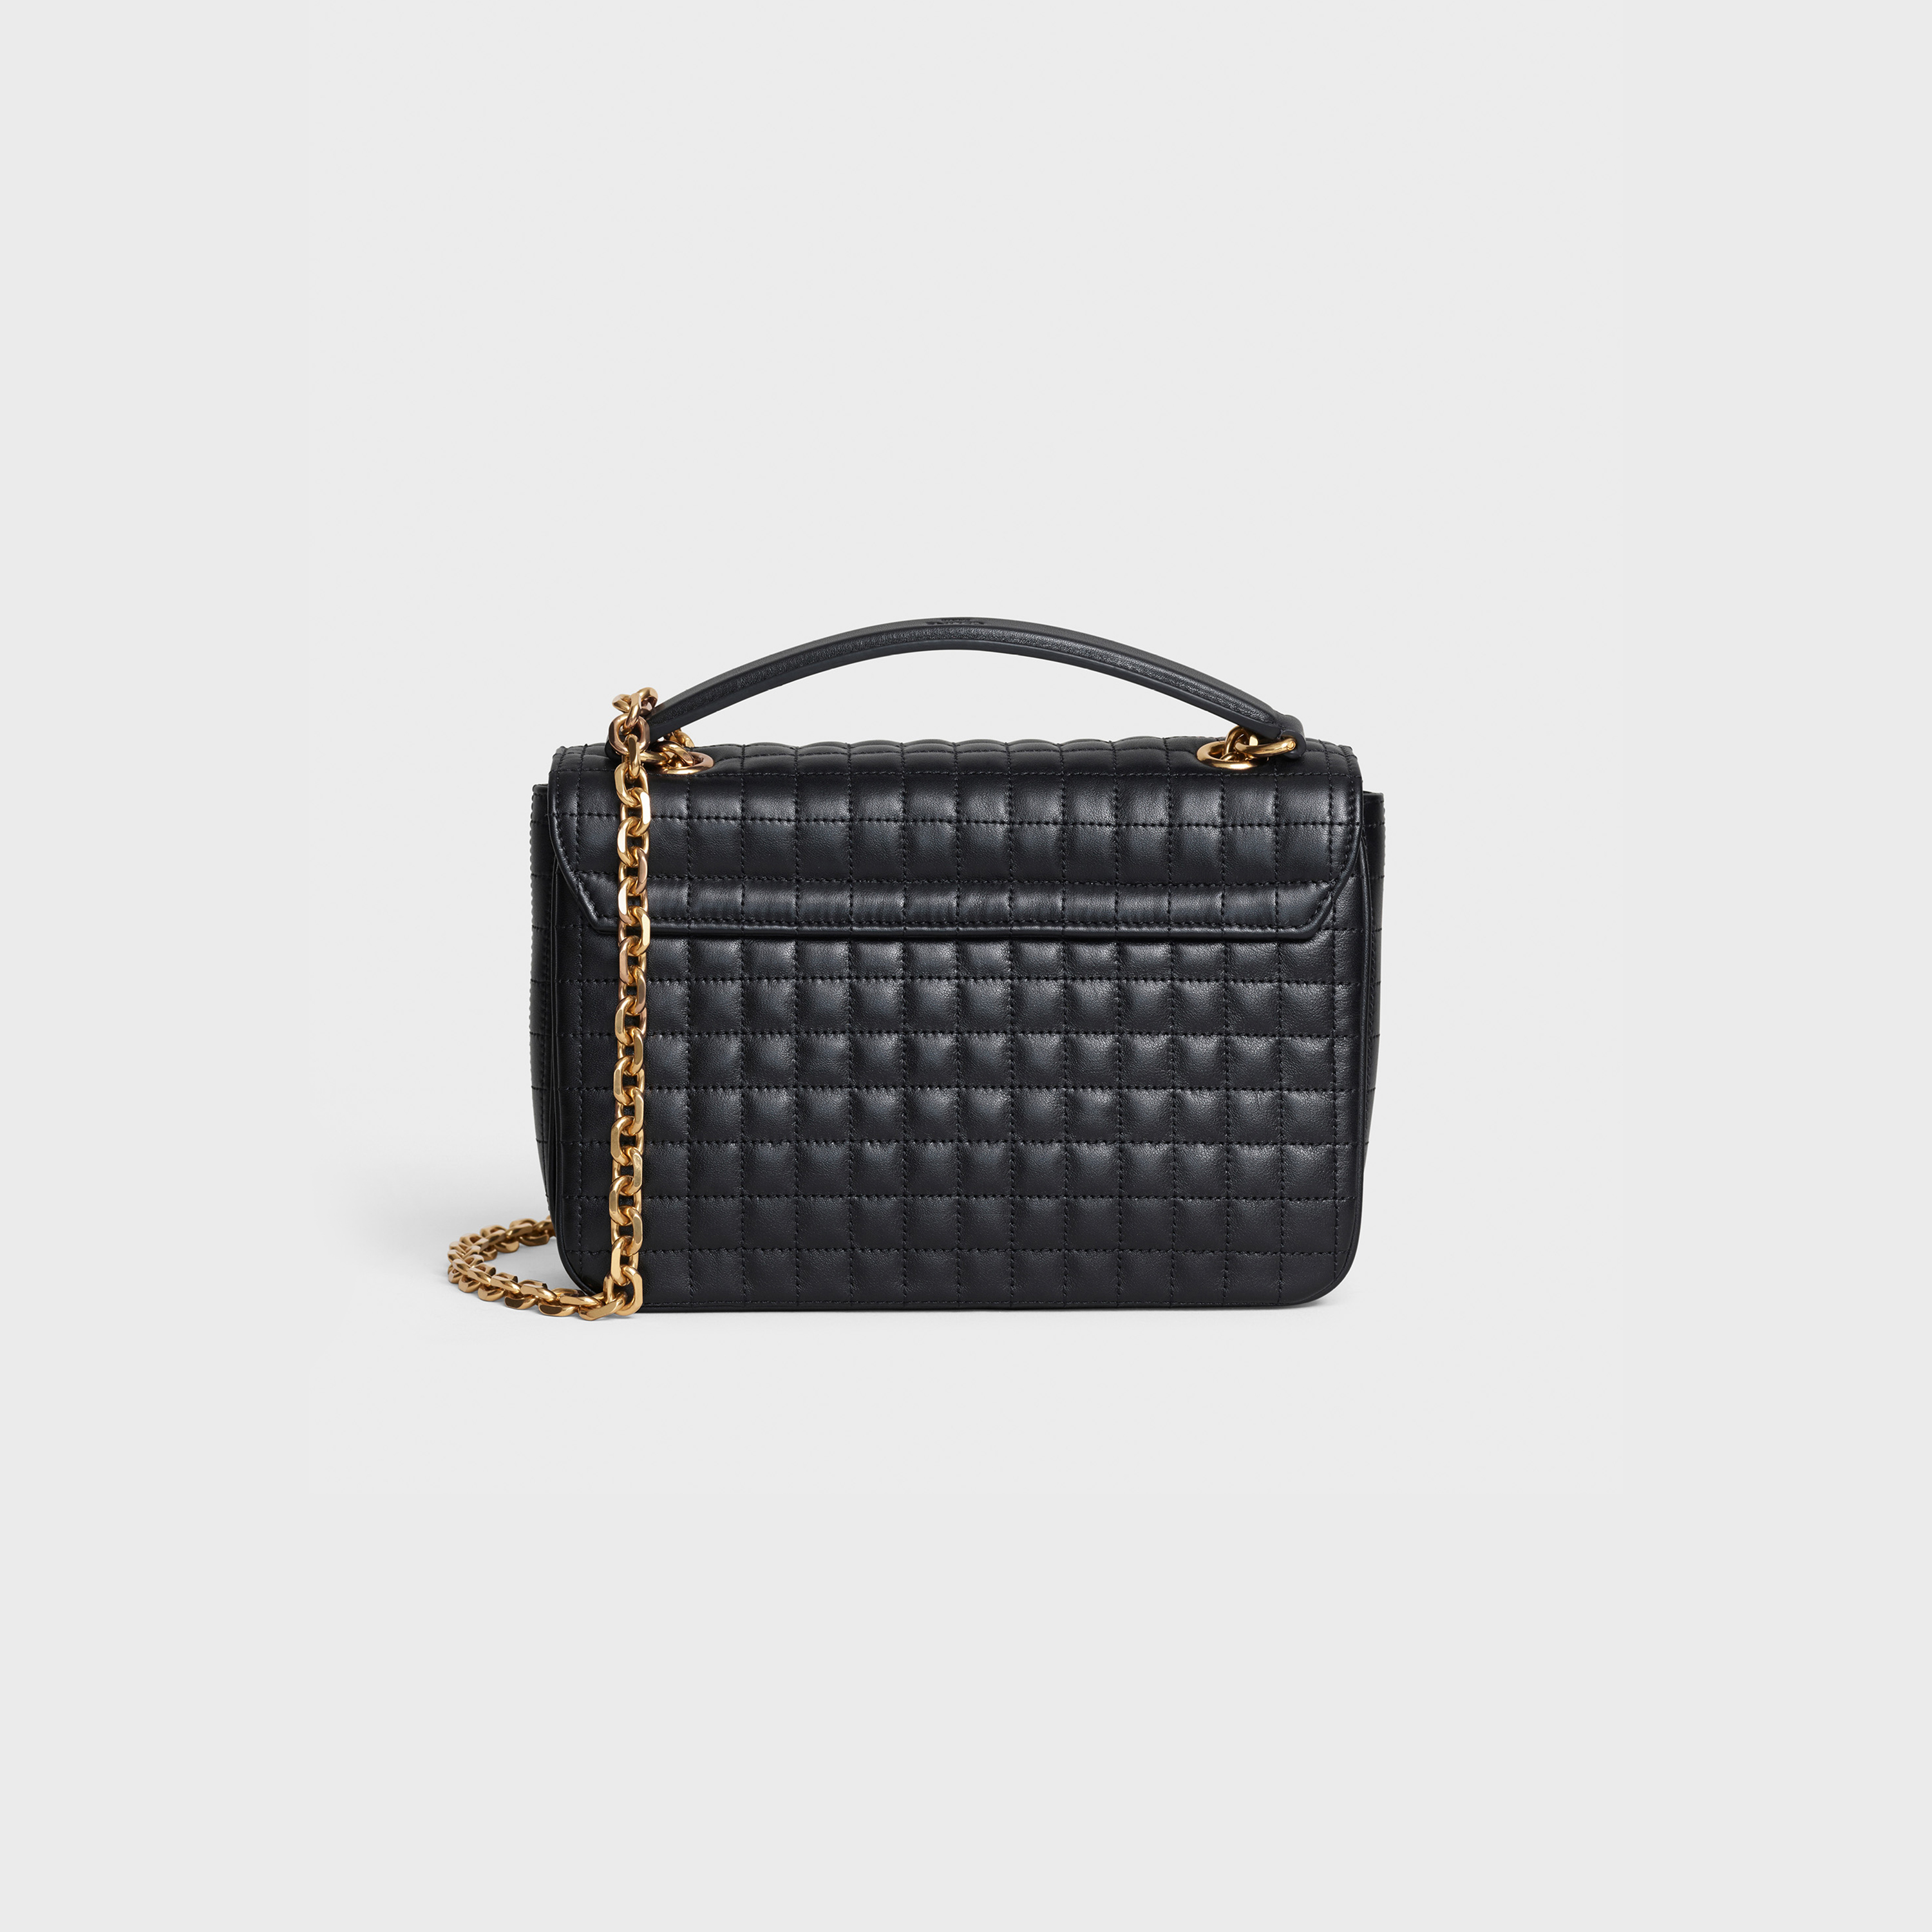 Medium C Bag in quilted calfskin | CELINE